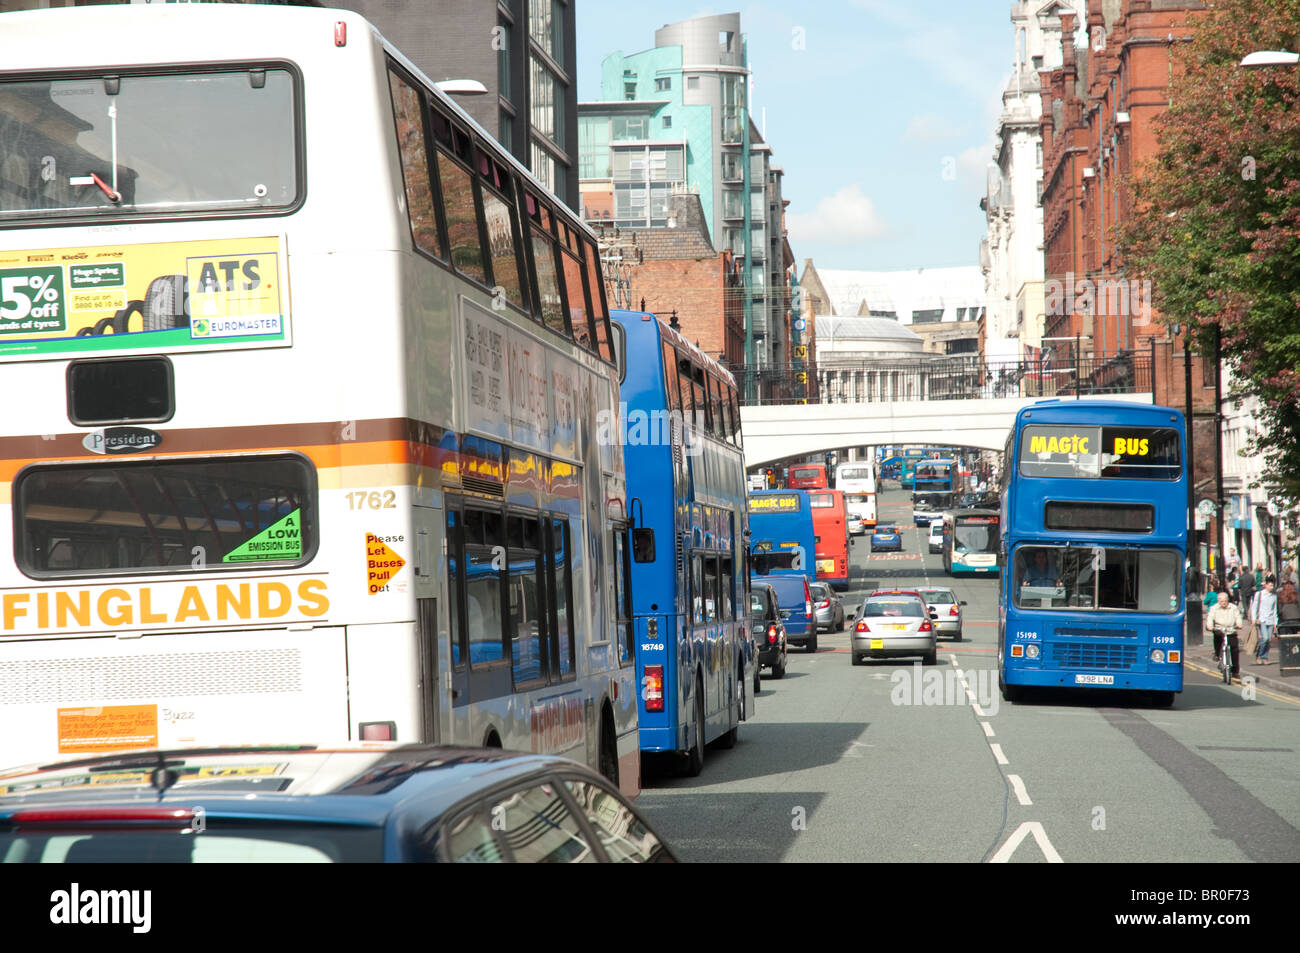 Buses on Oxford Road,Manchester,UK. - Stock Image